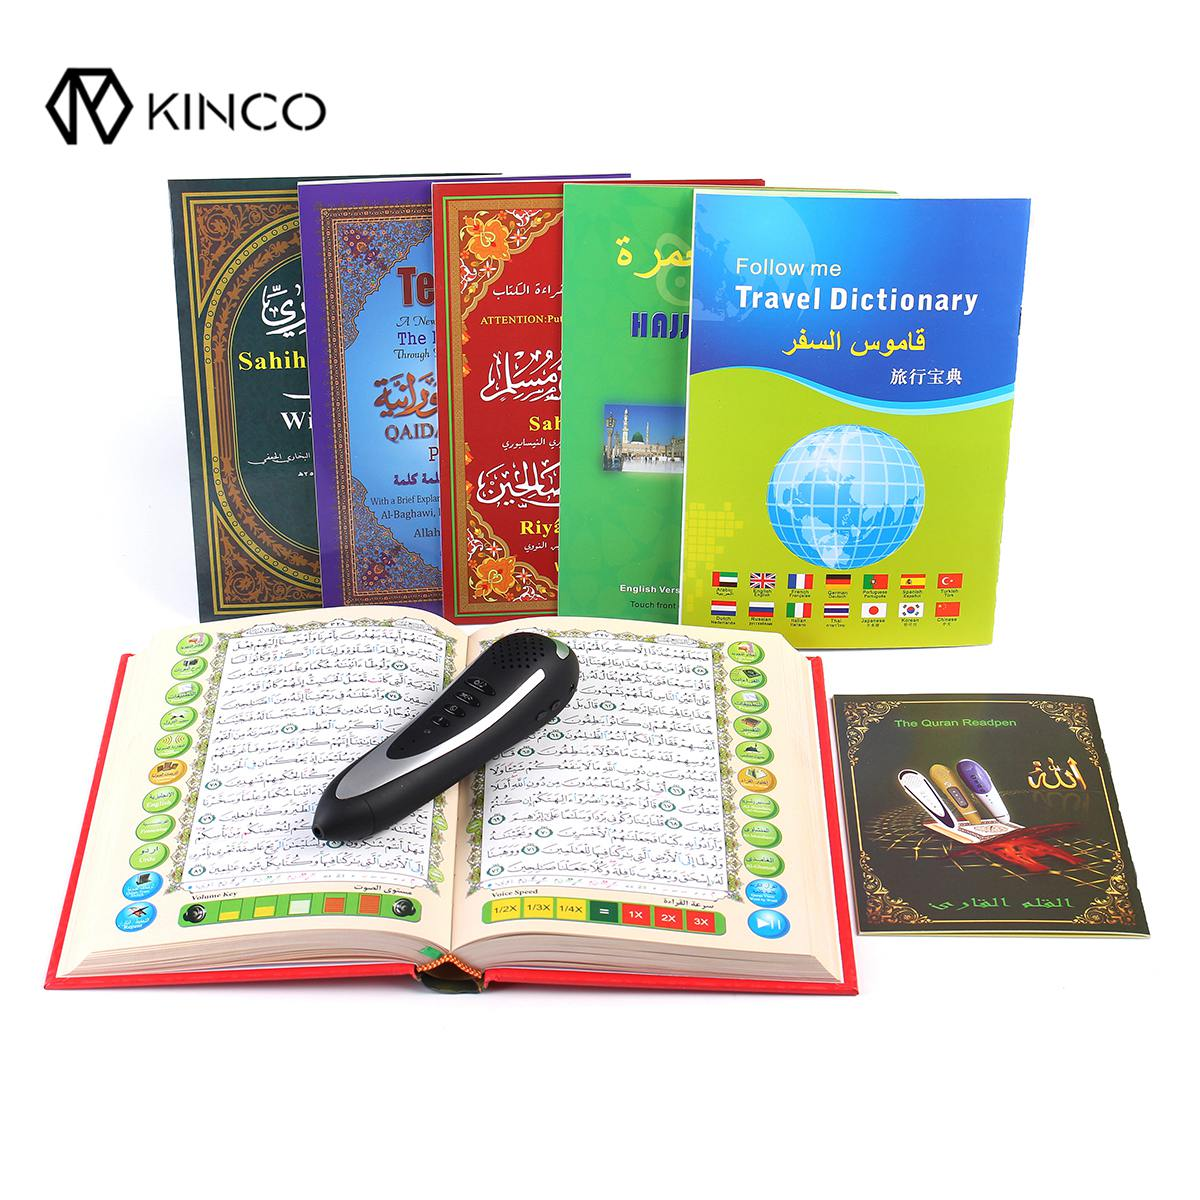 KINCO 4/8GB Digital Quran Reader Pen Speaker Recite FM MP3 TF With 6 Books Digital Quran Pen Reader 23 Languages digital quran lamp with azan clock colorful led light quran player fm radio quran free download english italian translator